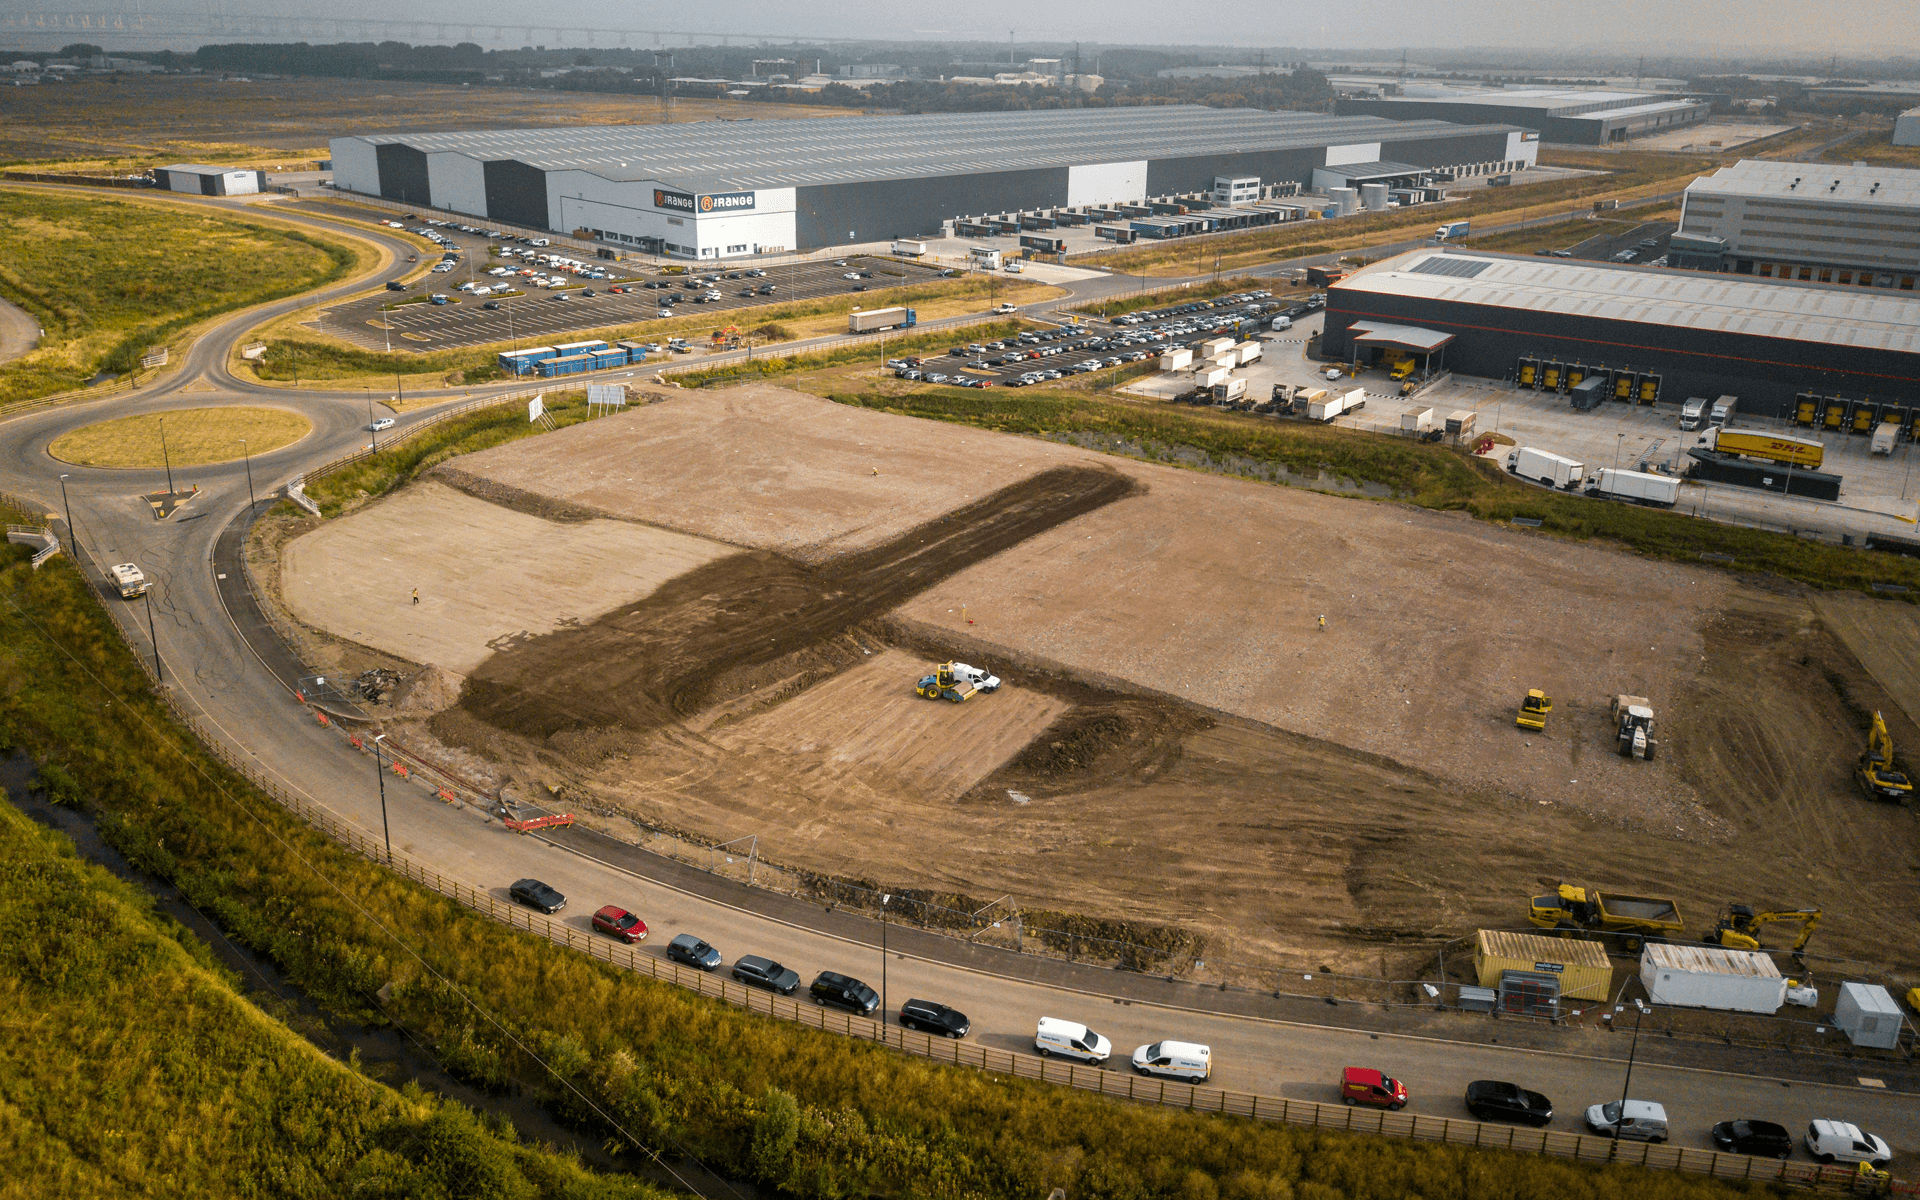 """Mavic Pro"" aerial drone photo of the start of a ""VINCI"" contruction site of several warehouses in Avonmouth, Bristol"